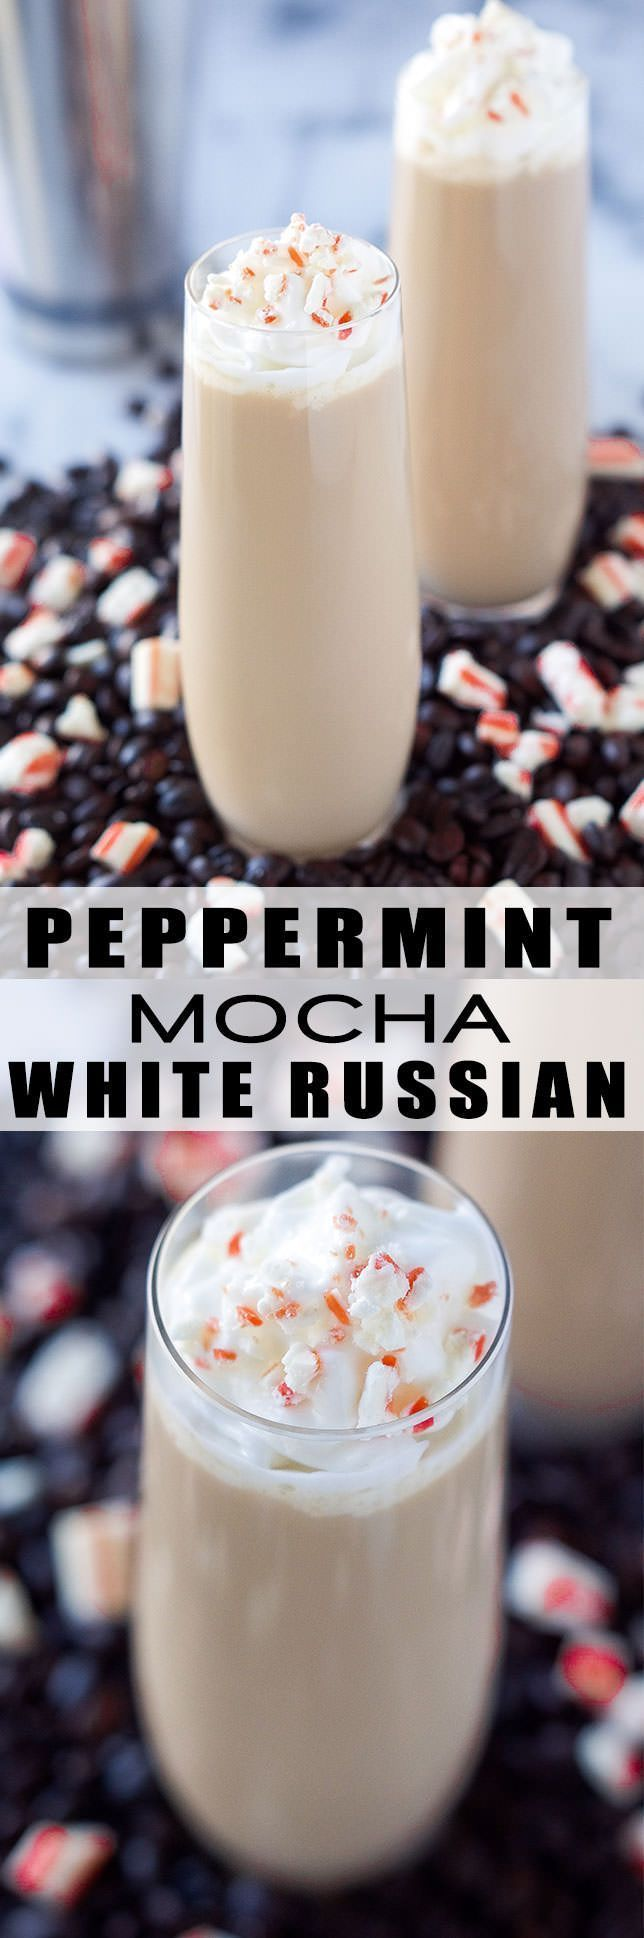 This Peppermint Mocha White Russian is a festive cocktail! The classic drink with a peppermint and chocolate twist! @indelight #wineglasswriter